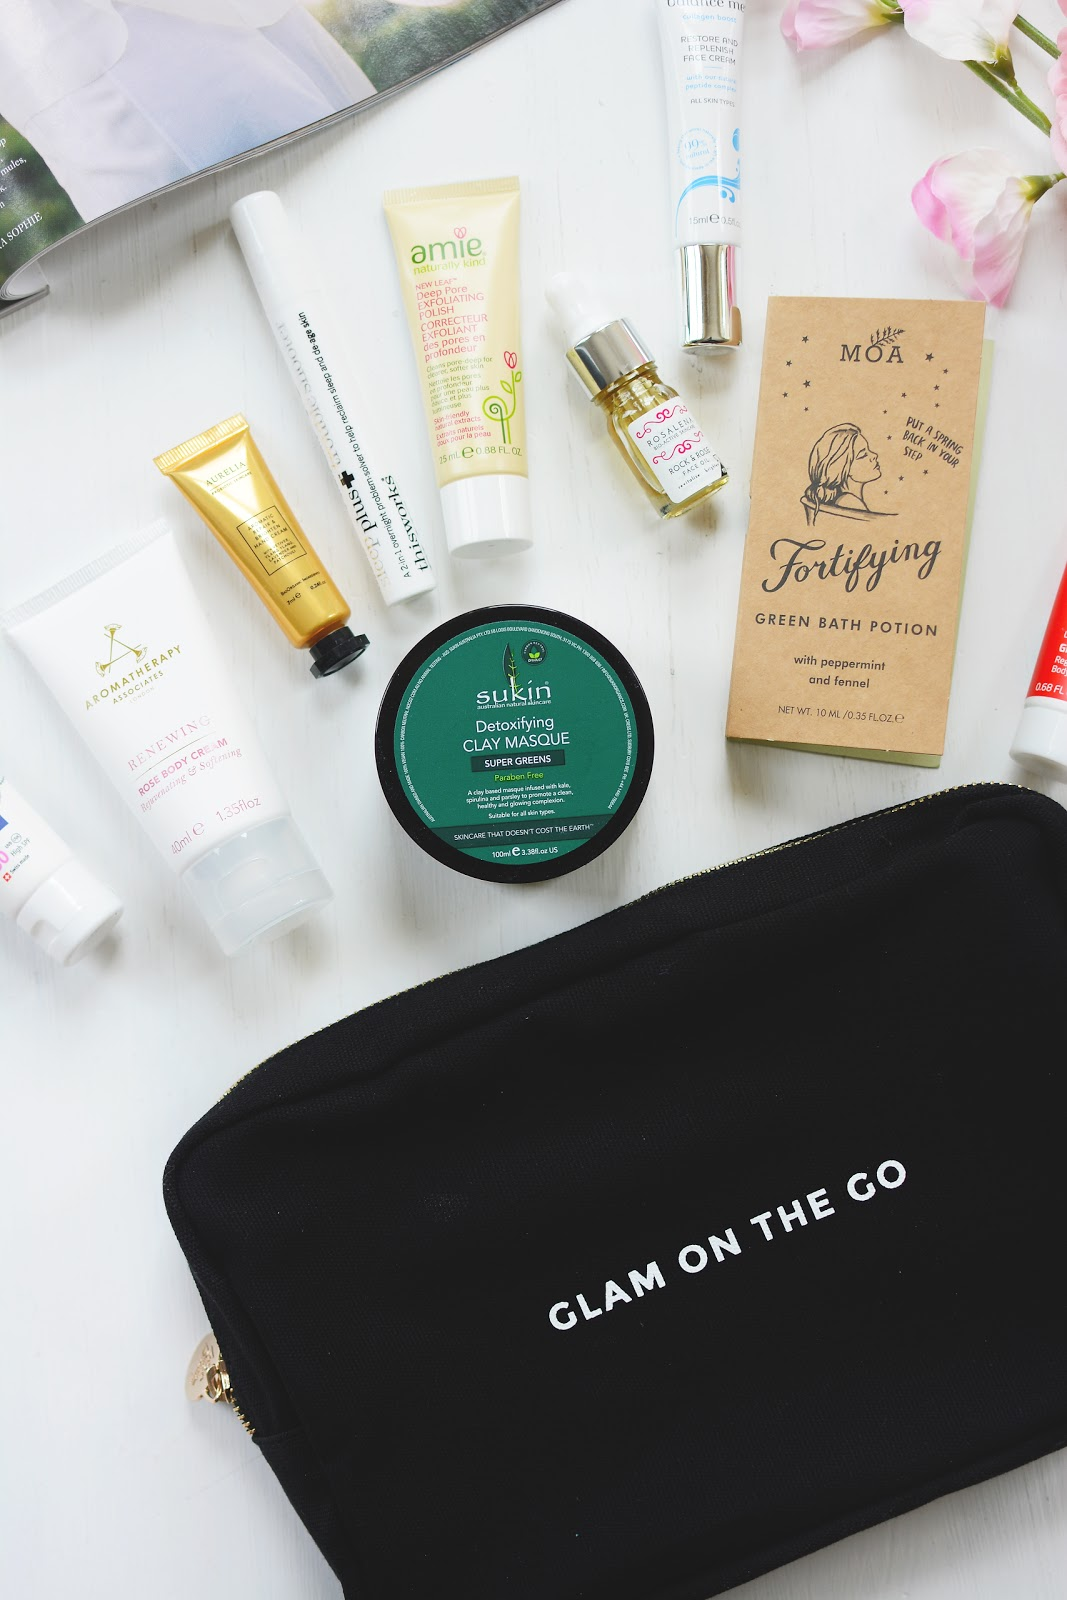 Latest In Beauty and The Perfume Society box